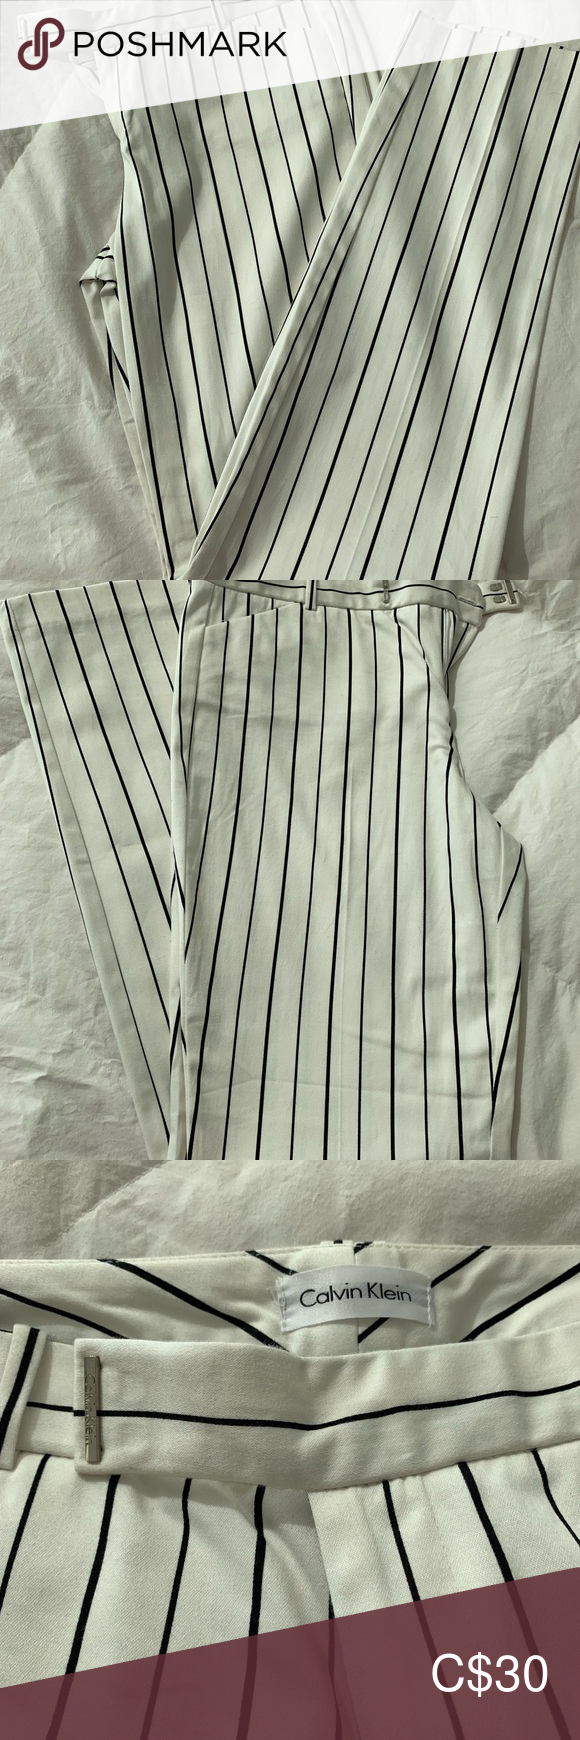 Never worn White slacks from Calvin Klein Excellent condition white slacks, great for an elegant office look! Calvin Klein Pants Straight Leg #whiteslacks Never worn White slacks from Calvin Klein Excellent condition white slacks, great for an elegant office look! Calvin Klein Pants Straight Leg #whiteslacks